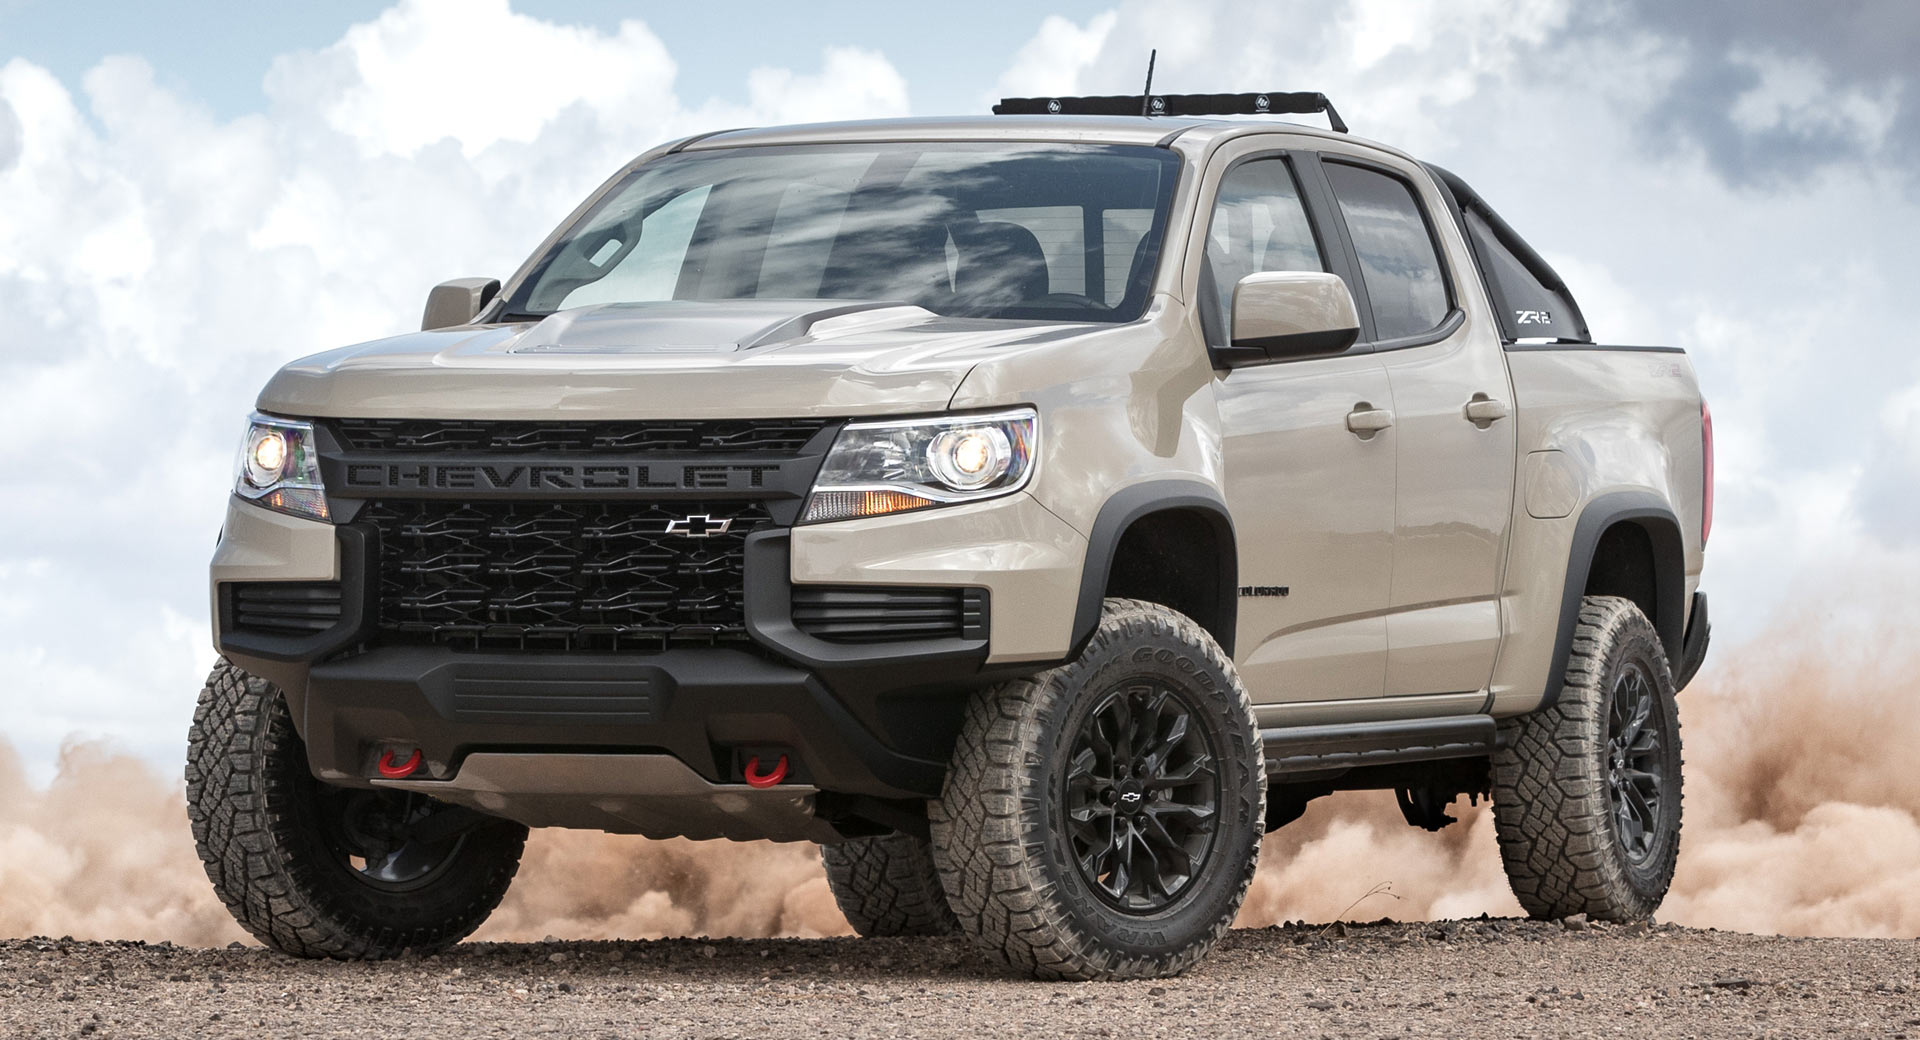 GM Investing $5.5 Billion Into Next-Gen Chevrolet Colorado And GMC